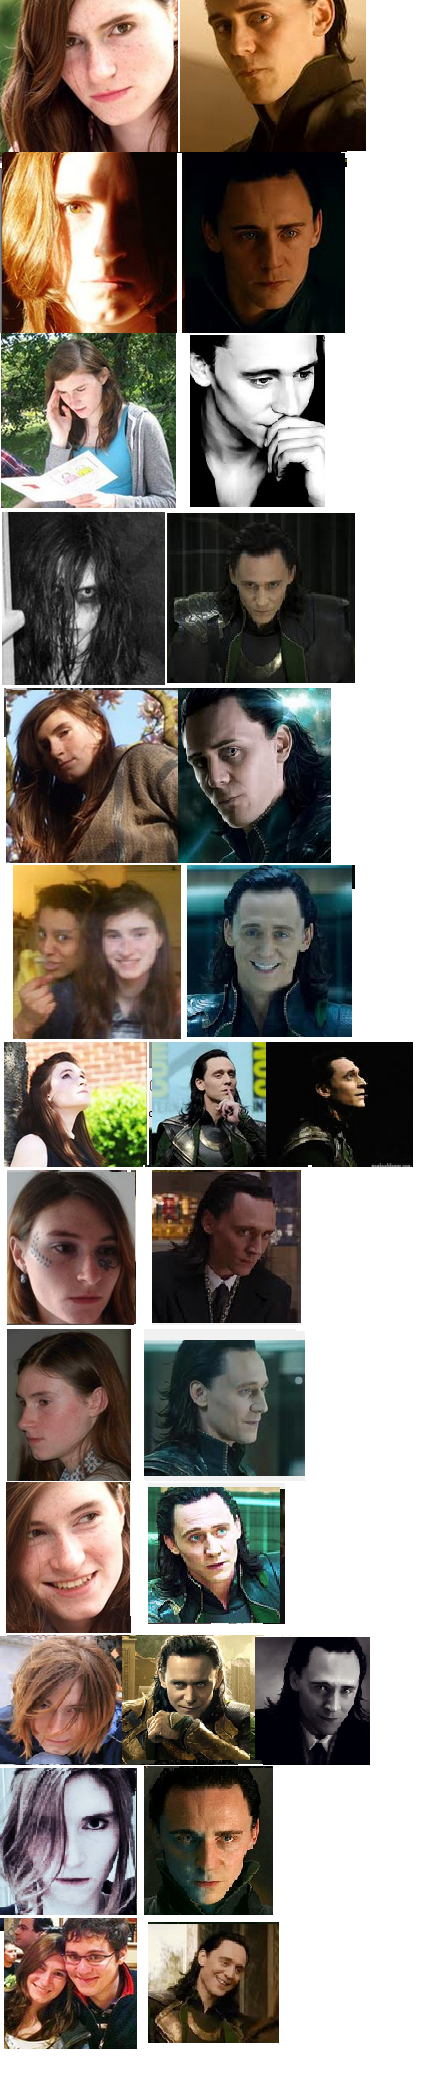 That awkward moment when 你 realise that Loki has been mimicking your 个人资料 pictures.